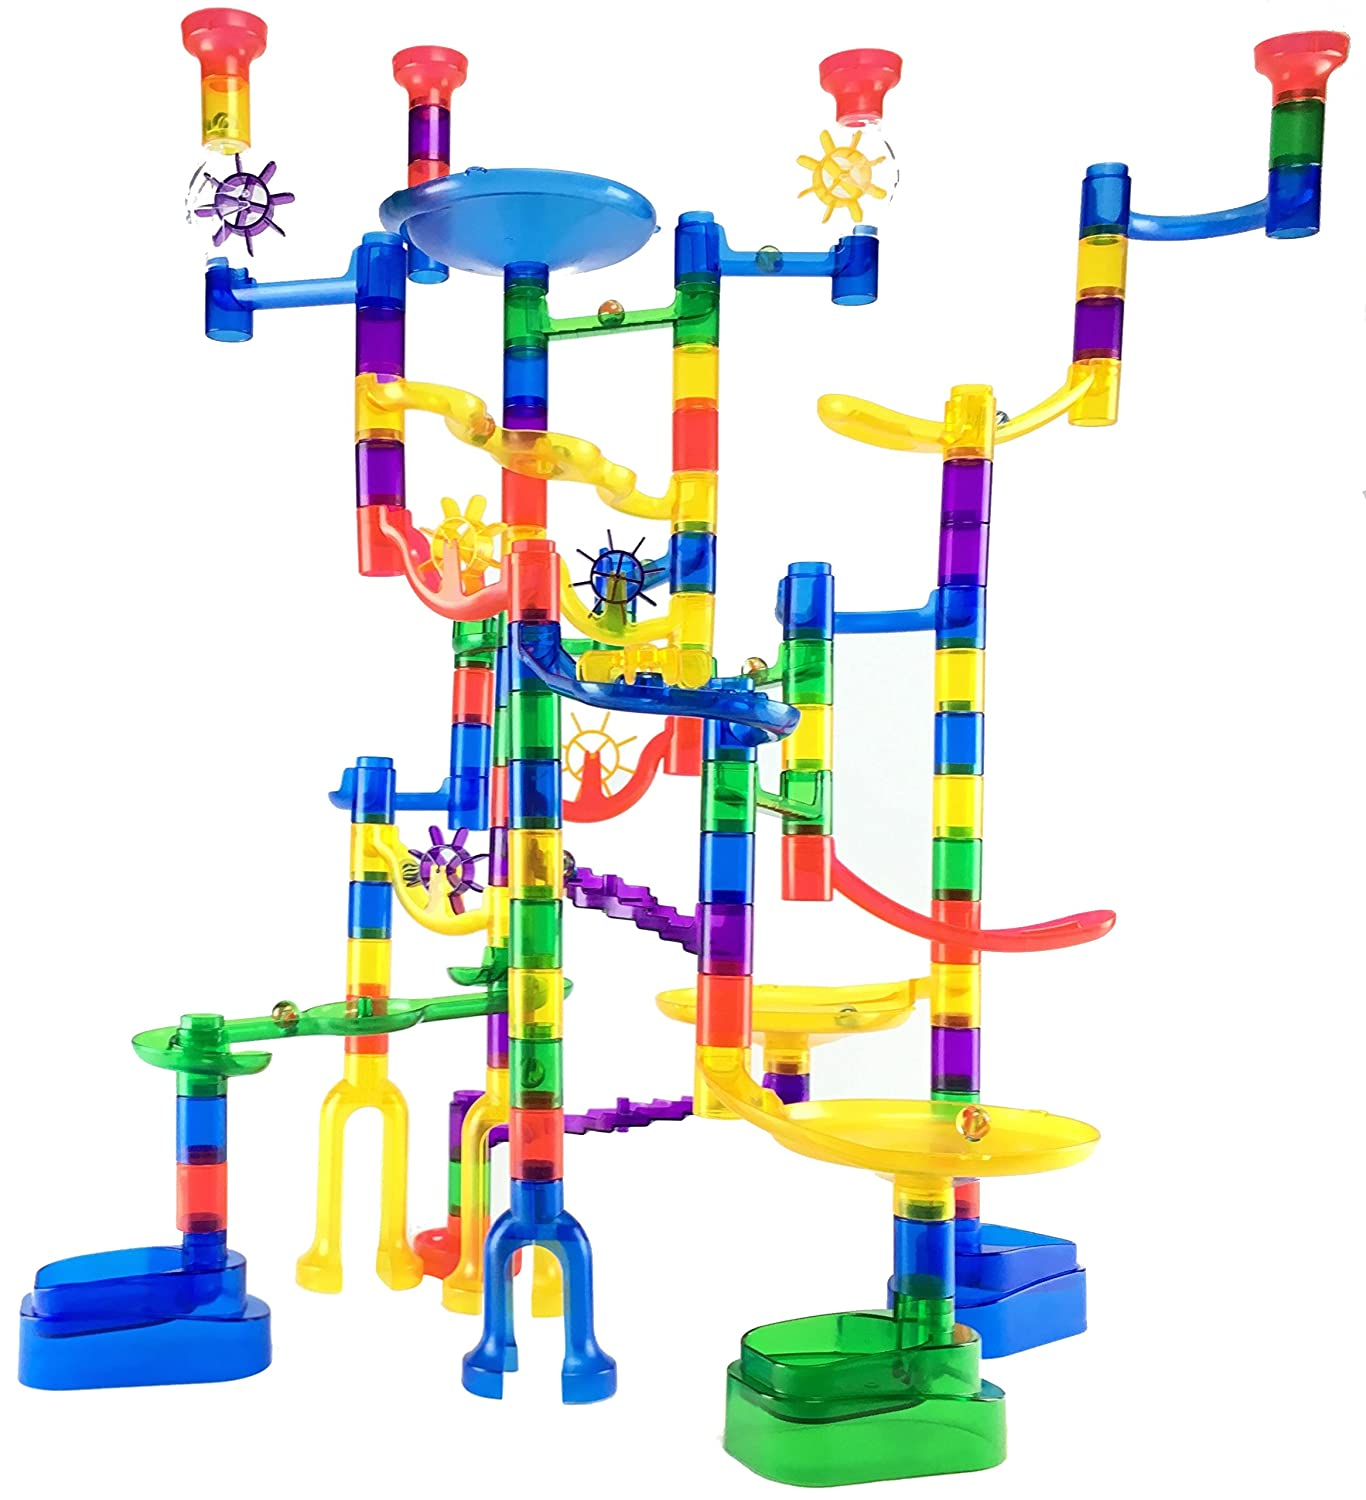 Marble Toys For Boys : Best marble runs for year olds jul reviews and